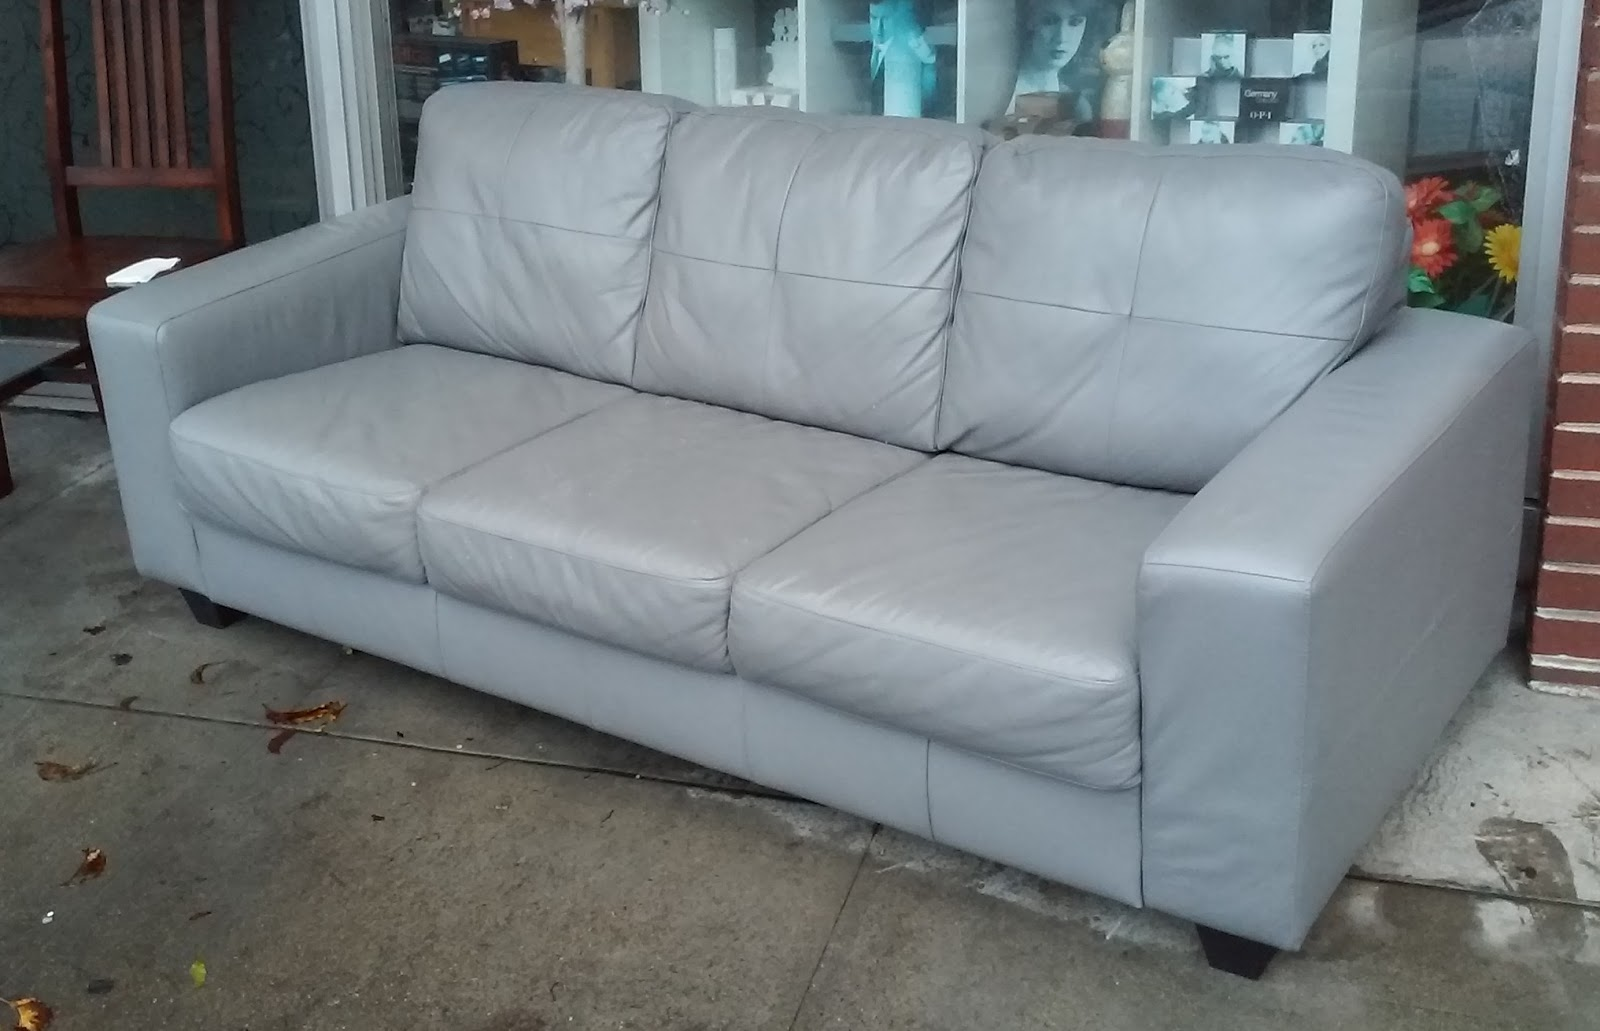 Uhuru furniture collectibles sold ikea skogaby gray for Gray sofas for sale